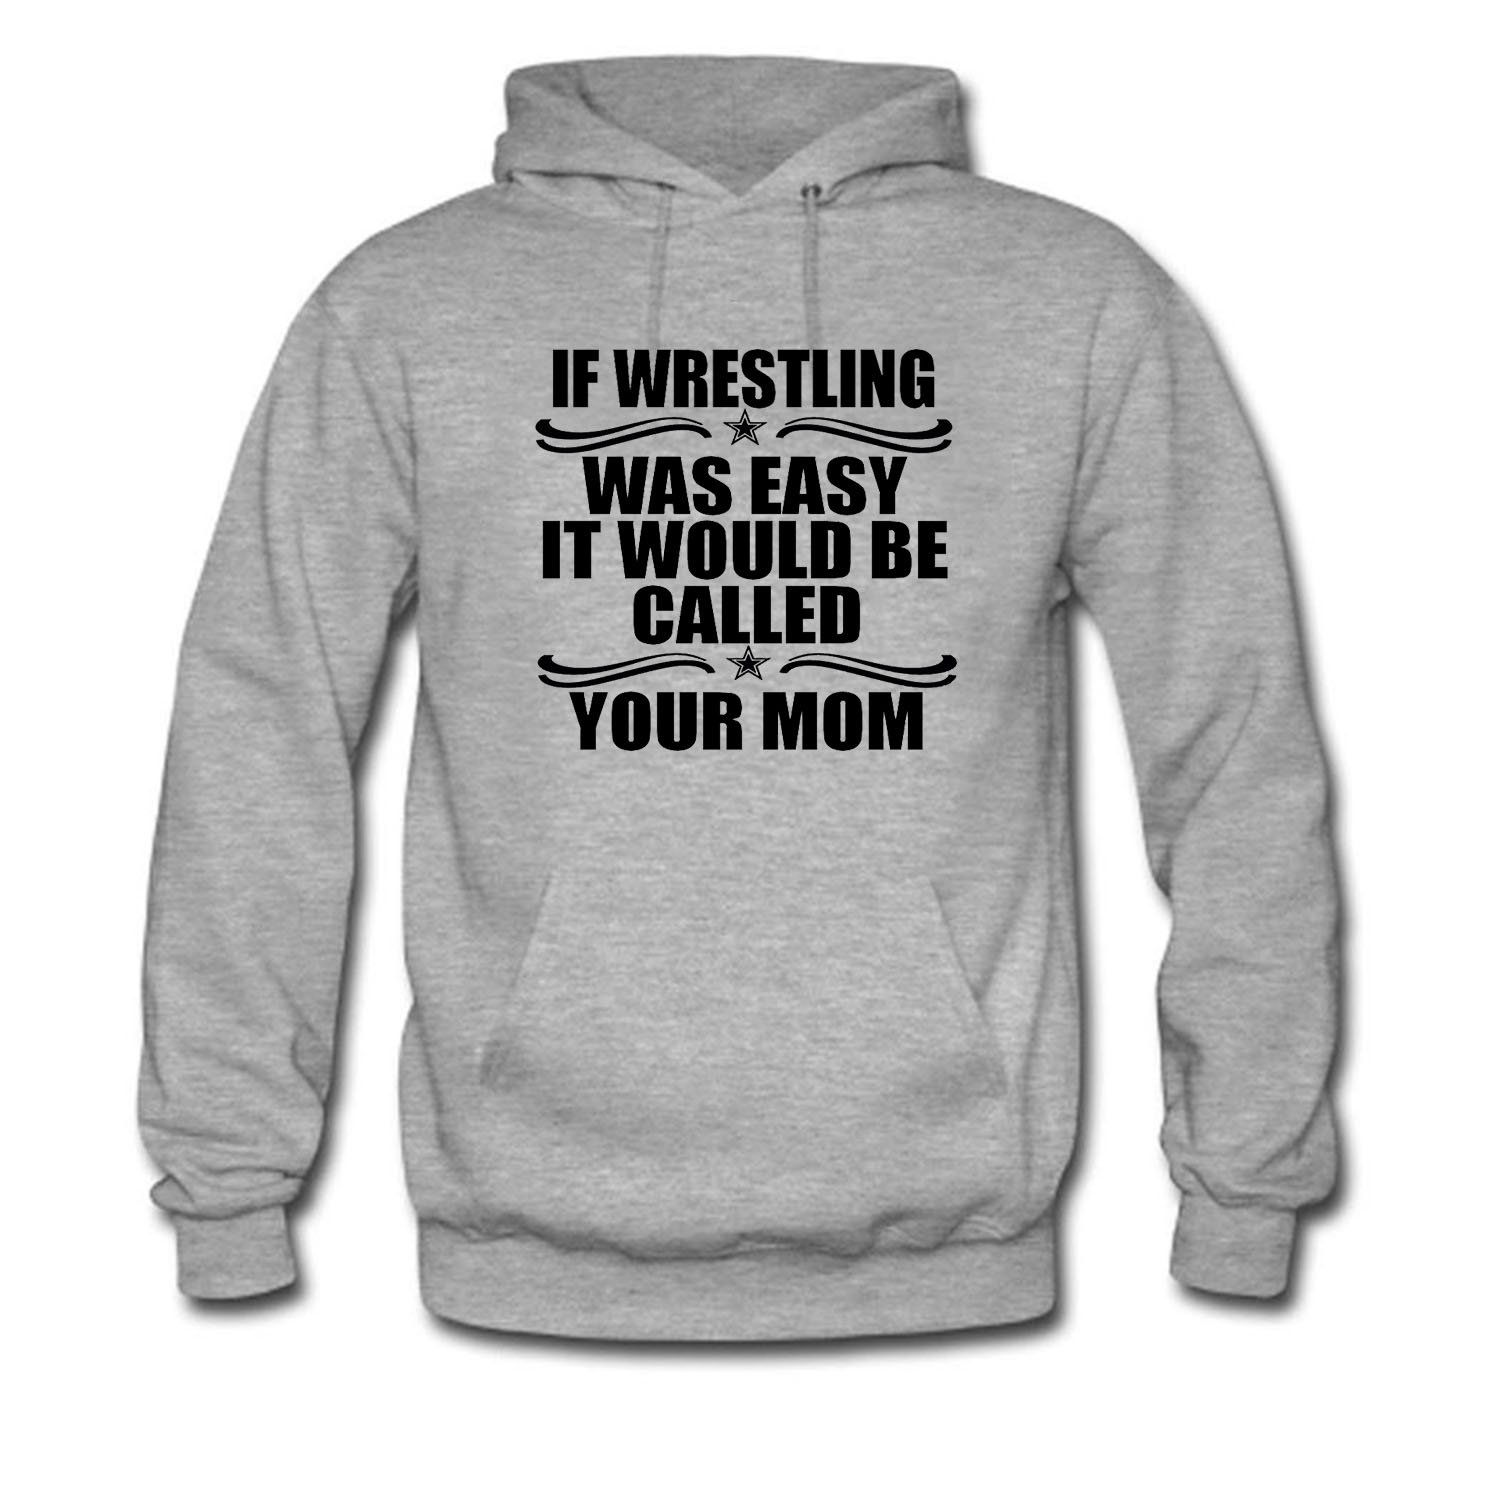 SYBING Men's If Wrestling Was Easy It Would Be Called Your Mom Hoodie by SYBING